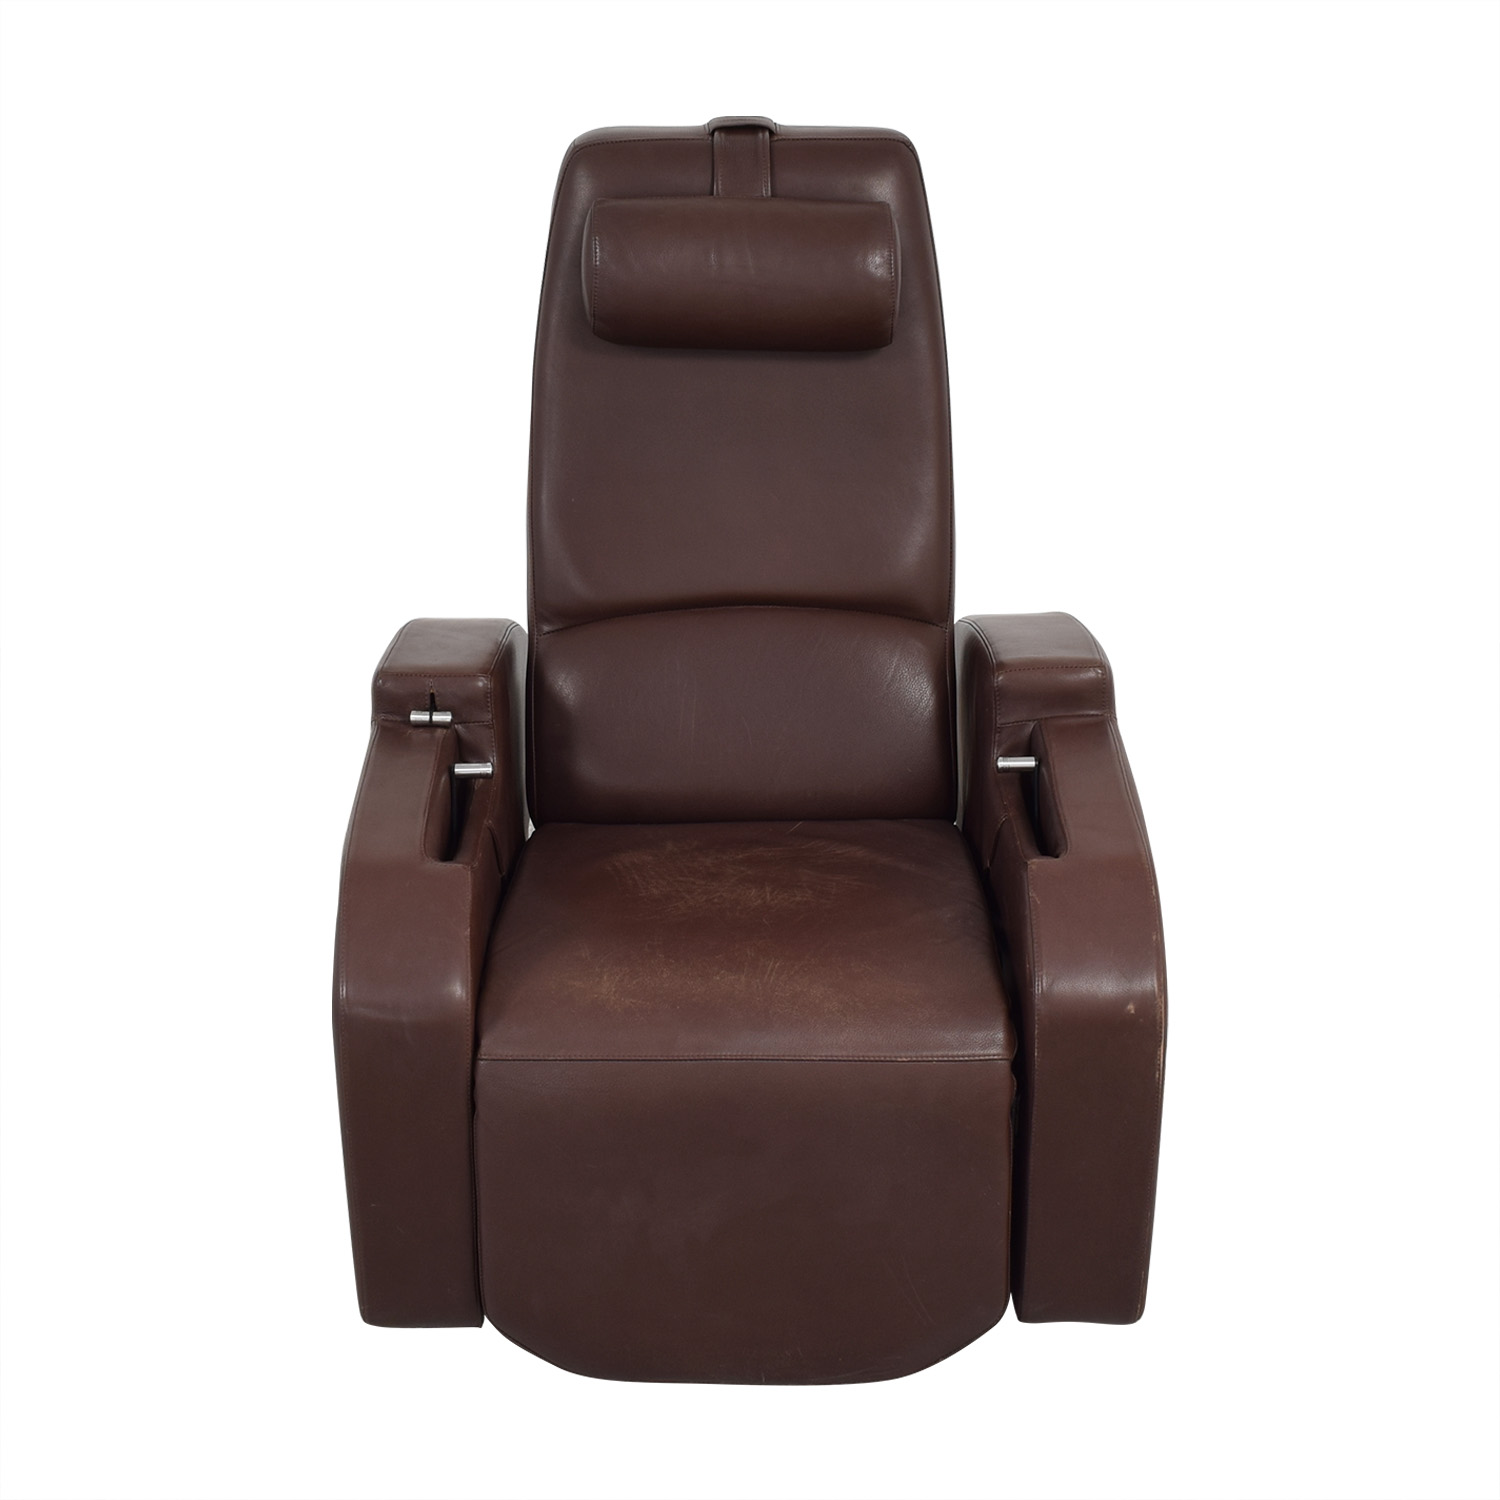 Relax The Back Relax the Back Zero Gravity Leather Rocking Recliner second hand